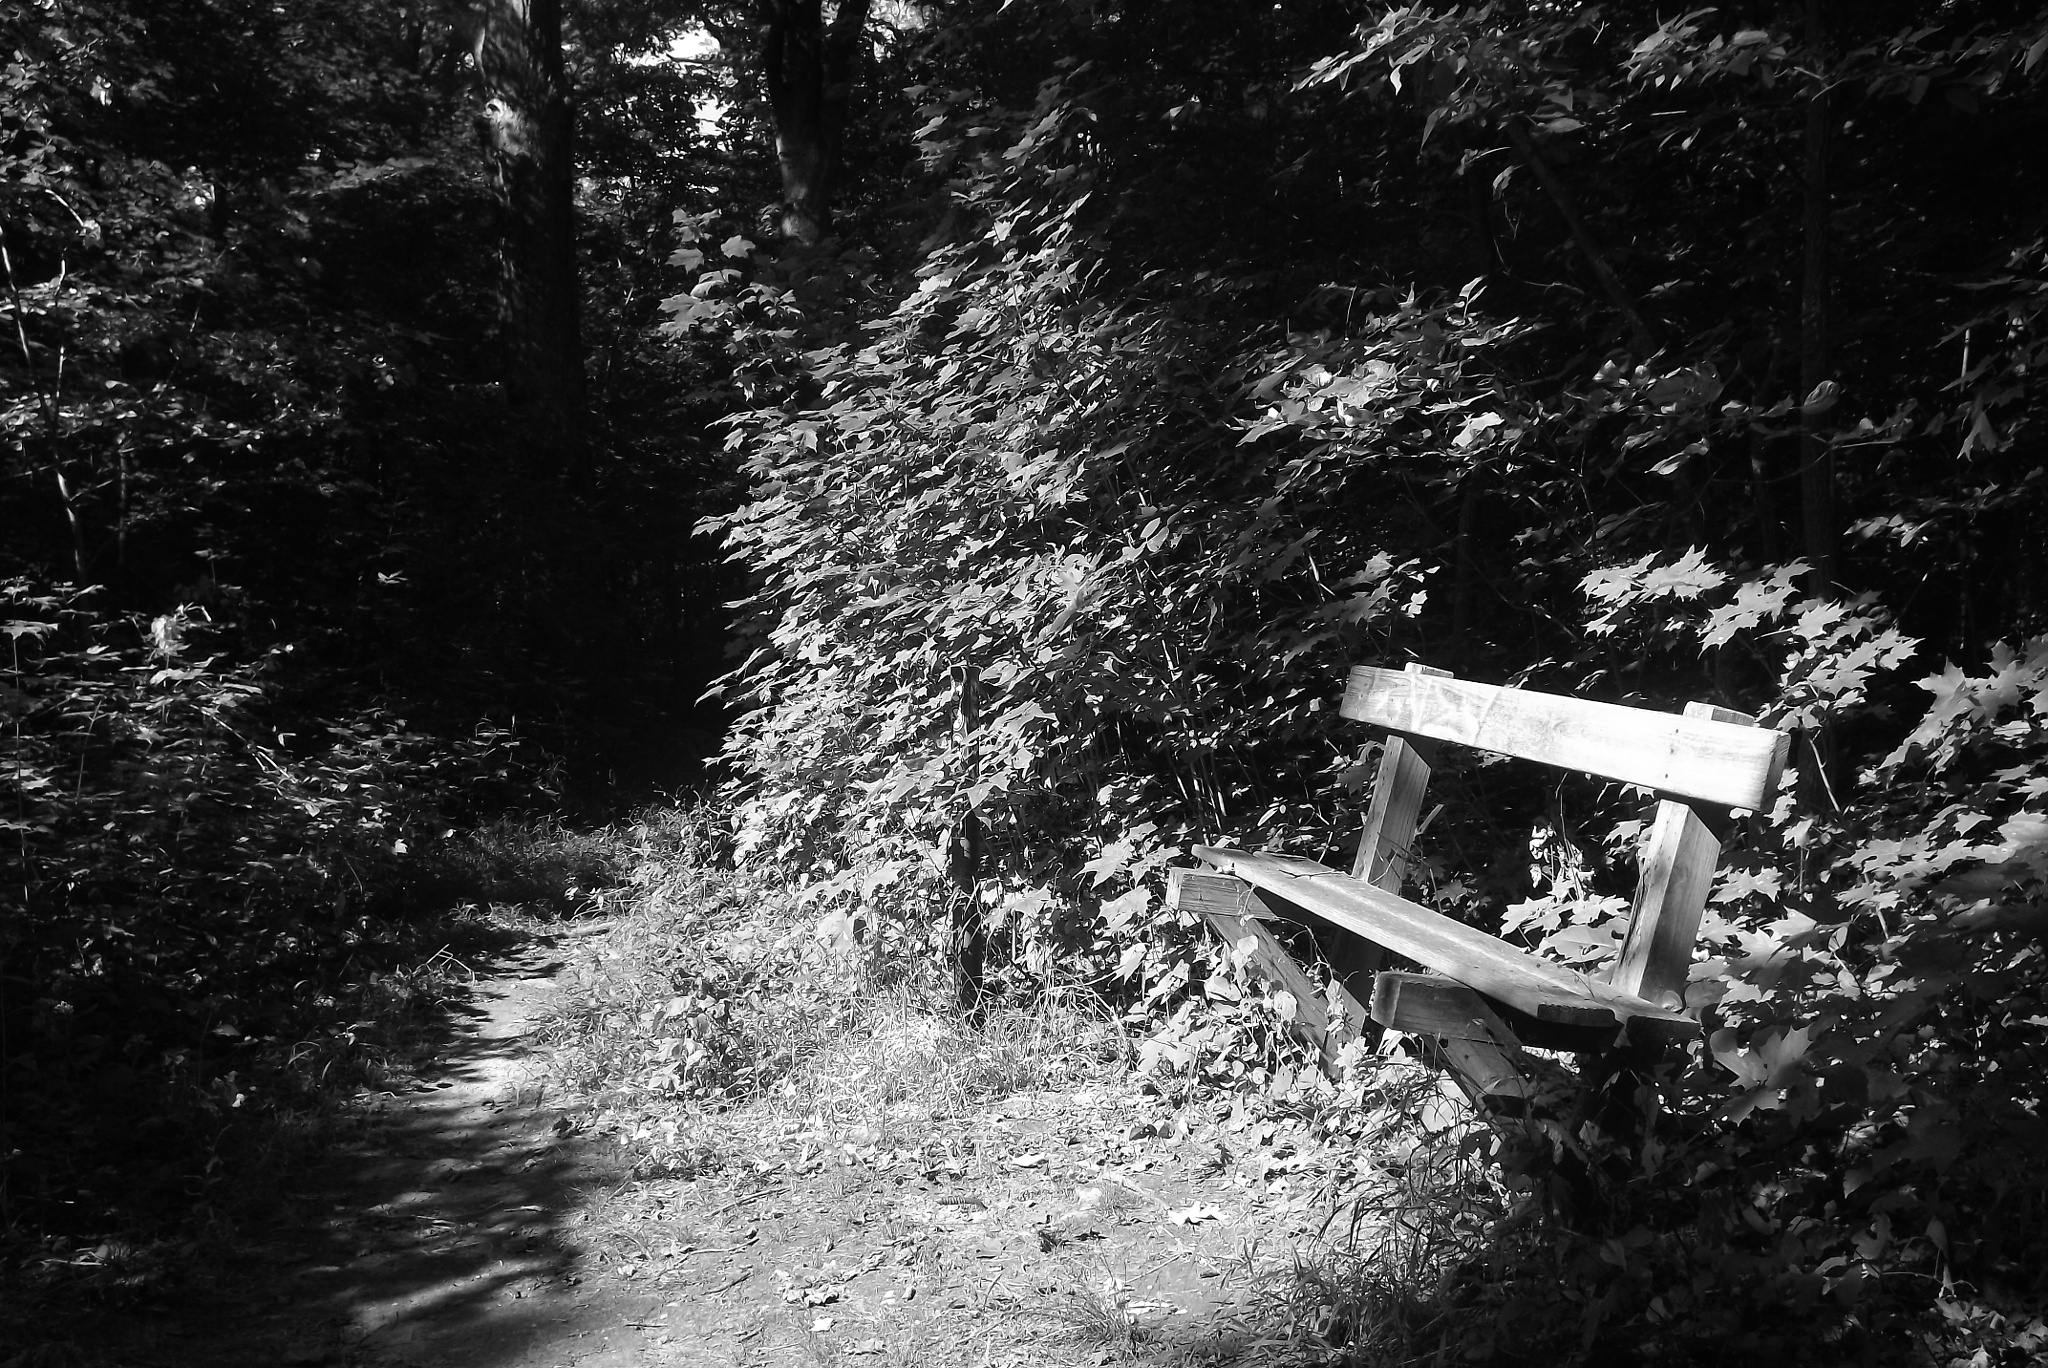 Lonesome Bench by erica.english.522